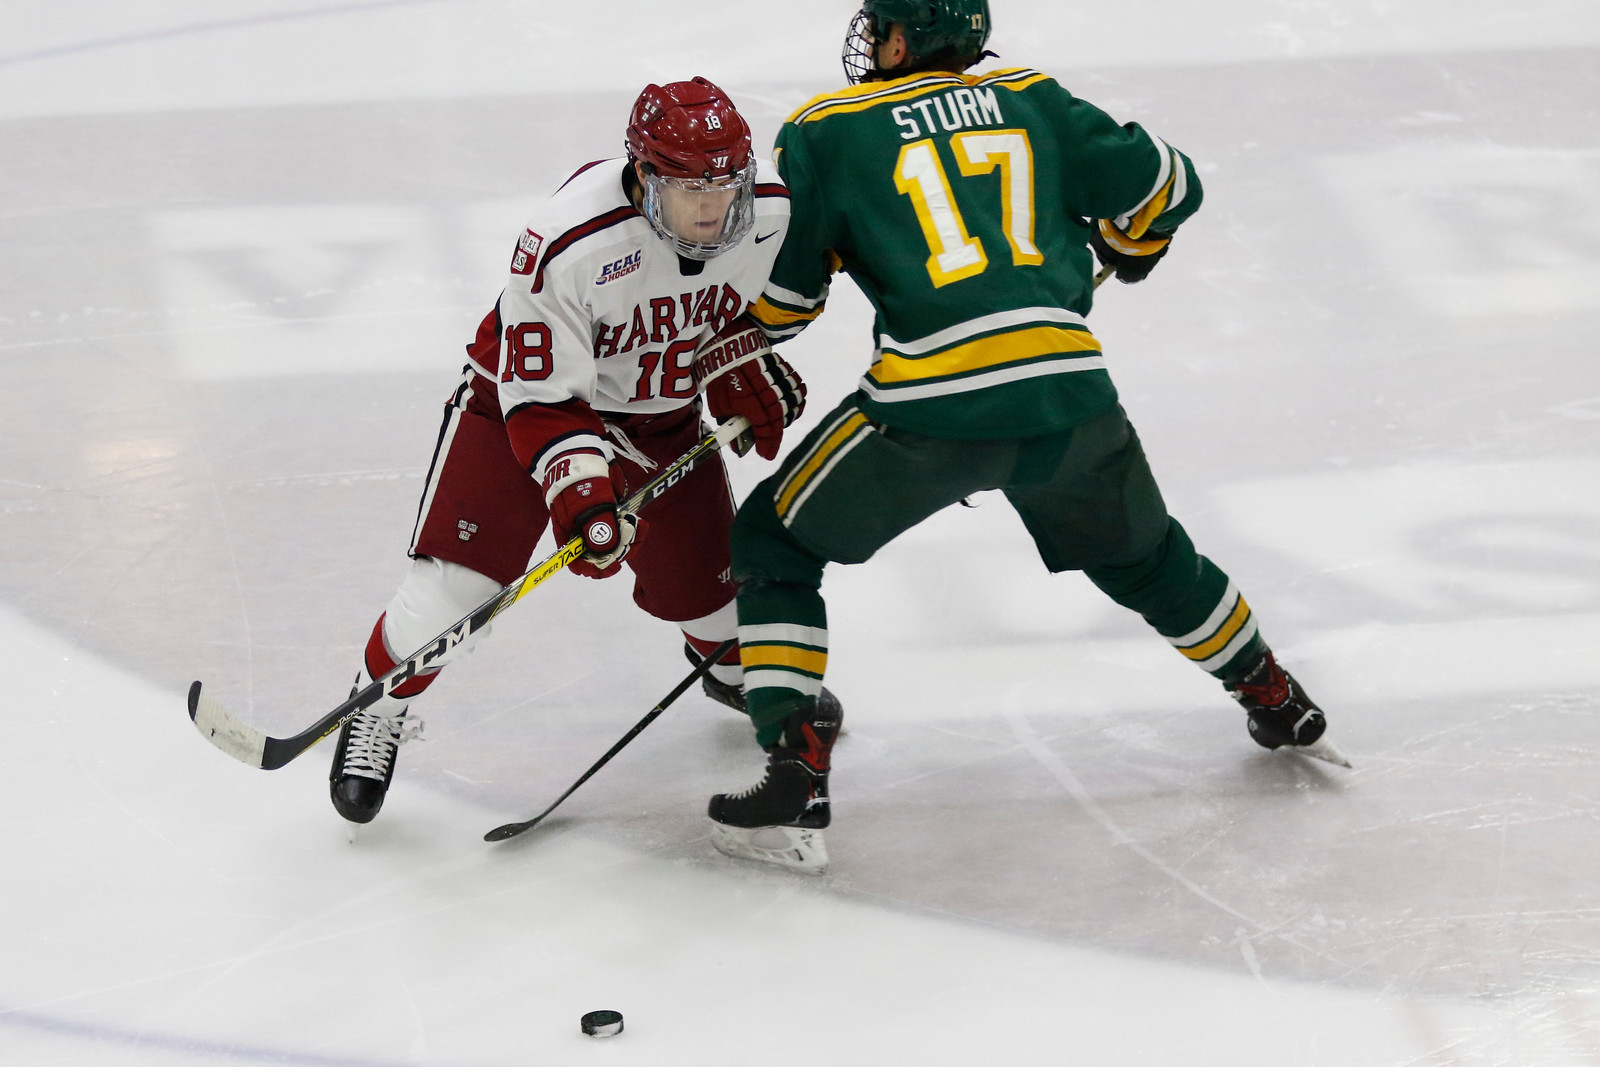 Harvard's Adam Fox and Clarkson's Nico Sturm were both named finalists for the ECAC Player of the Year and will square off on Friday night.